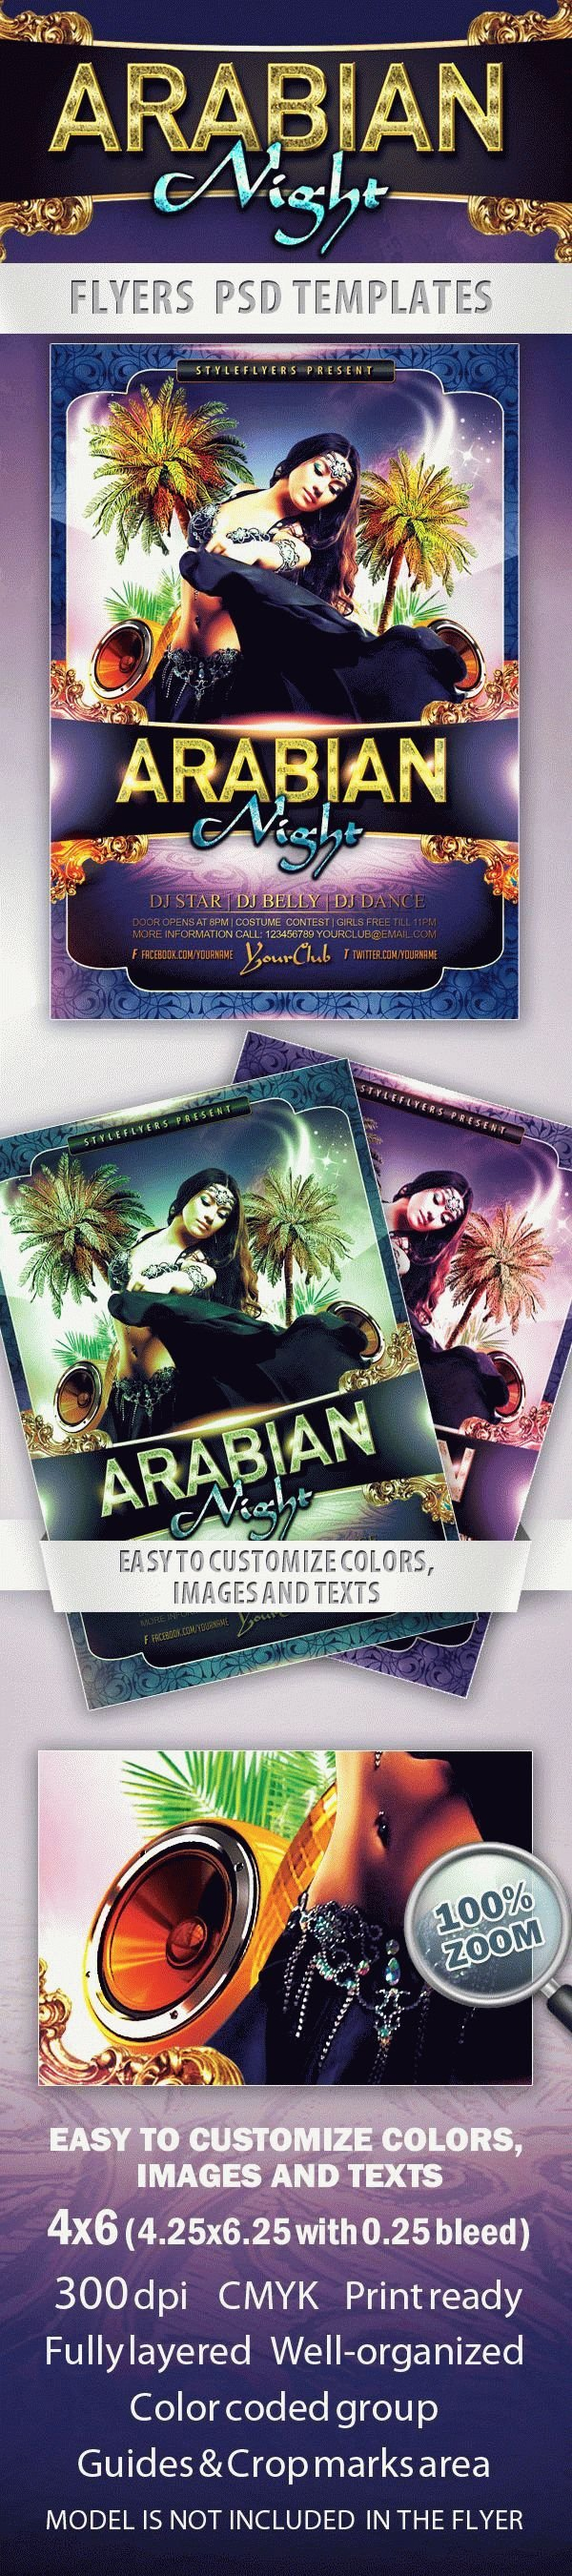 Arabian Night Party Flyer